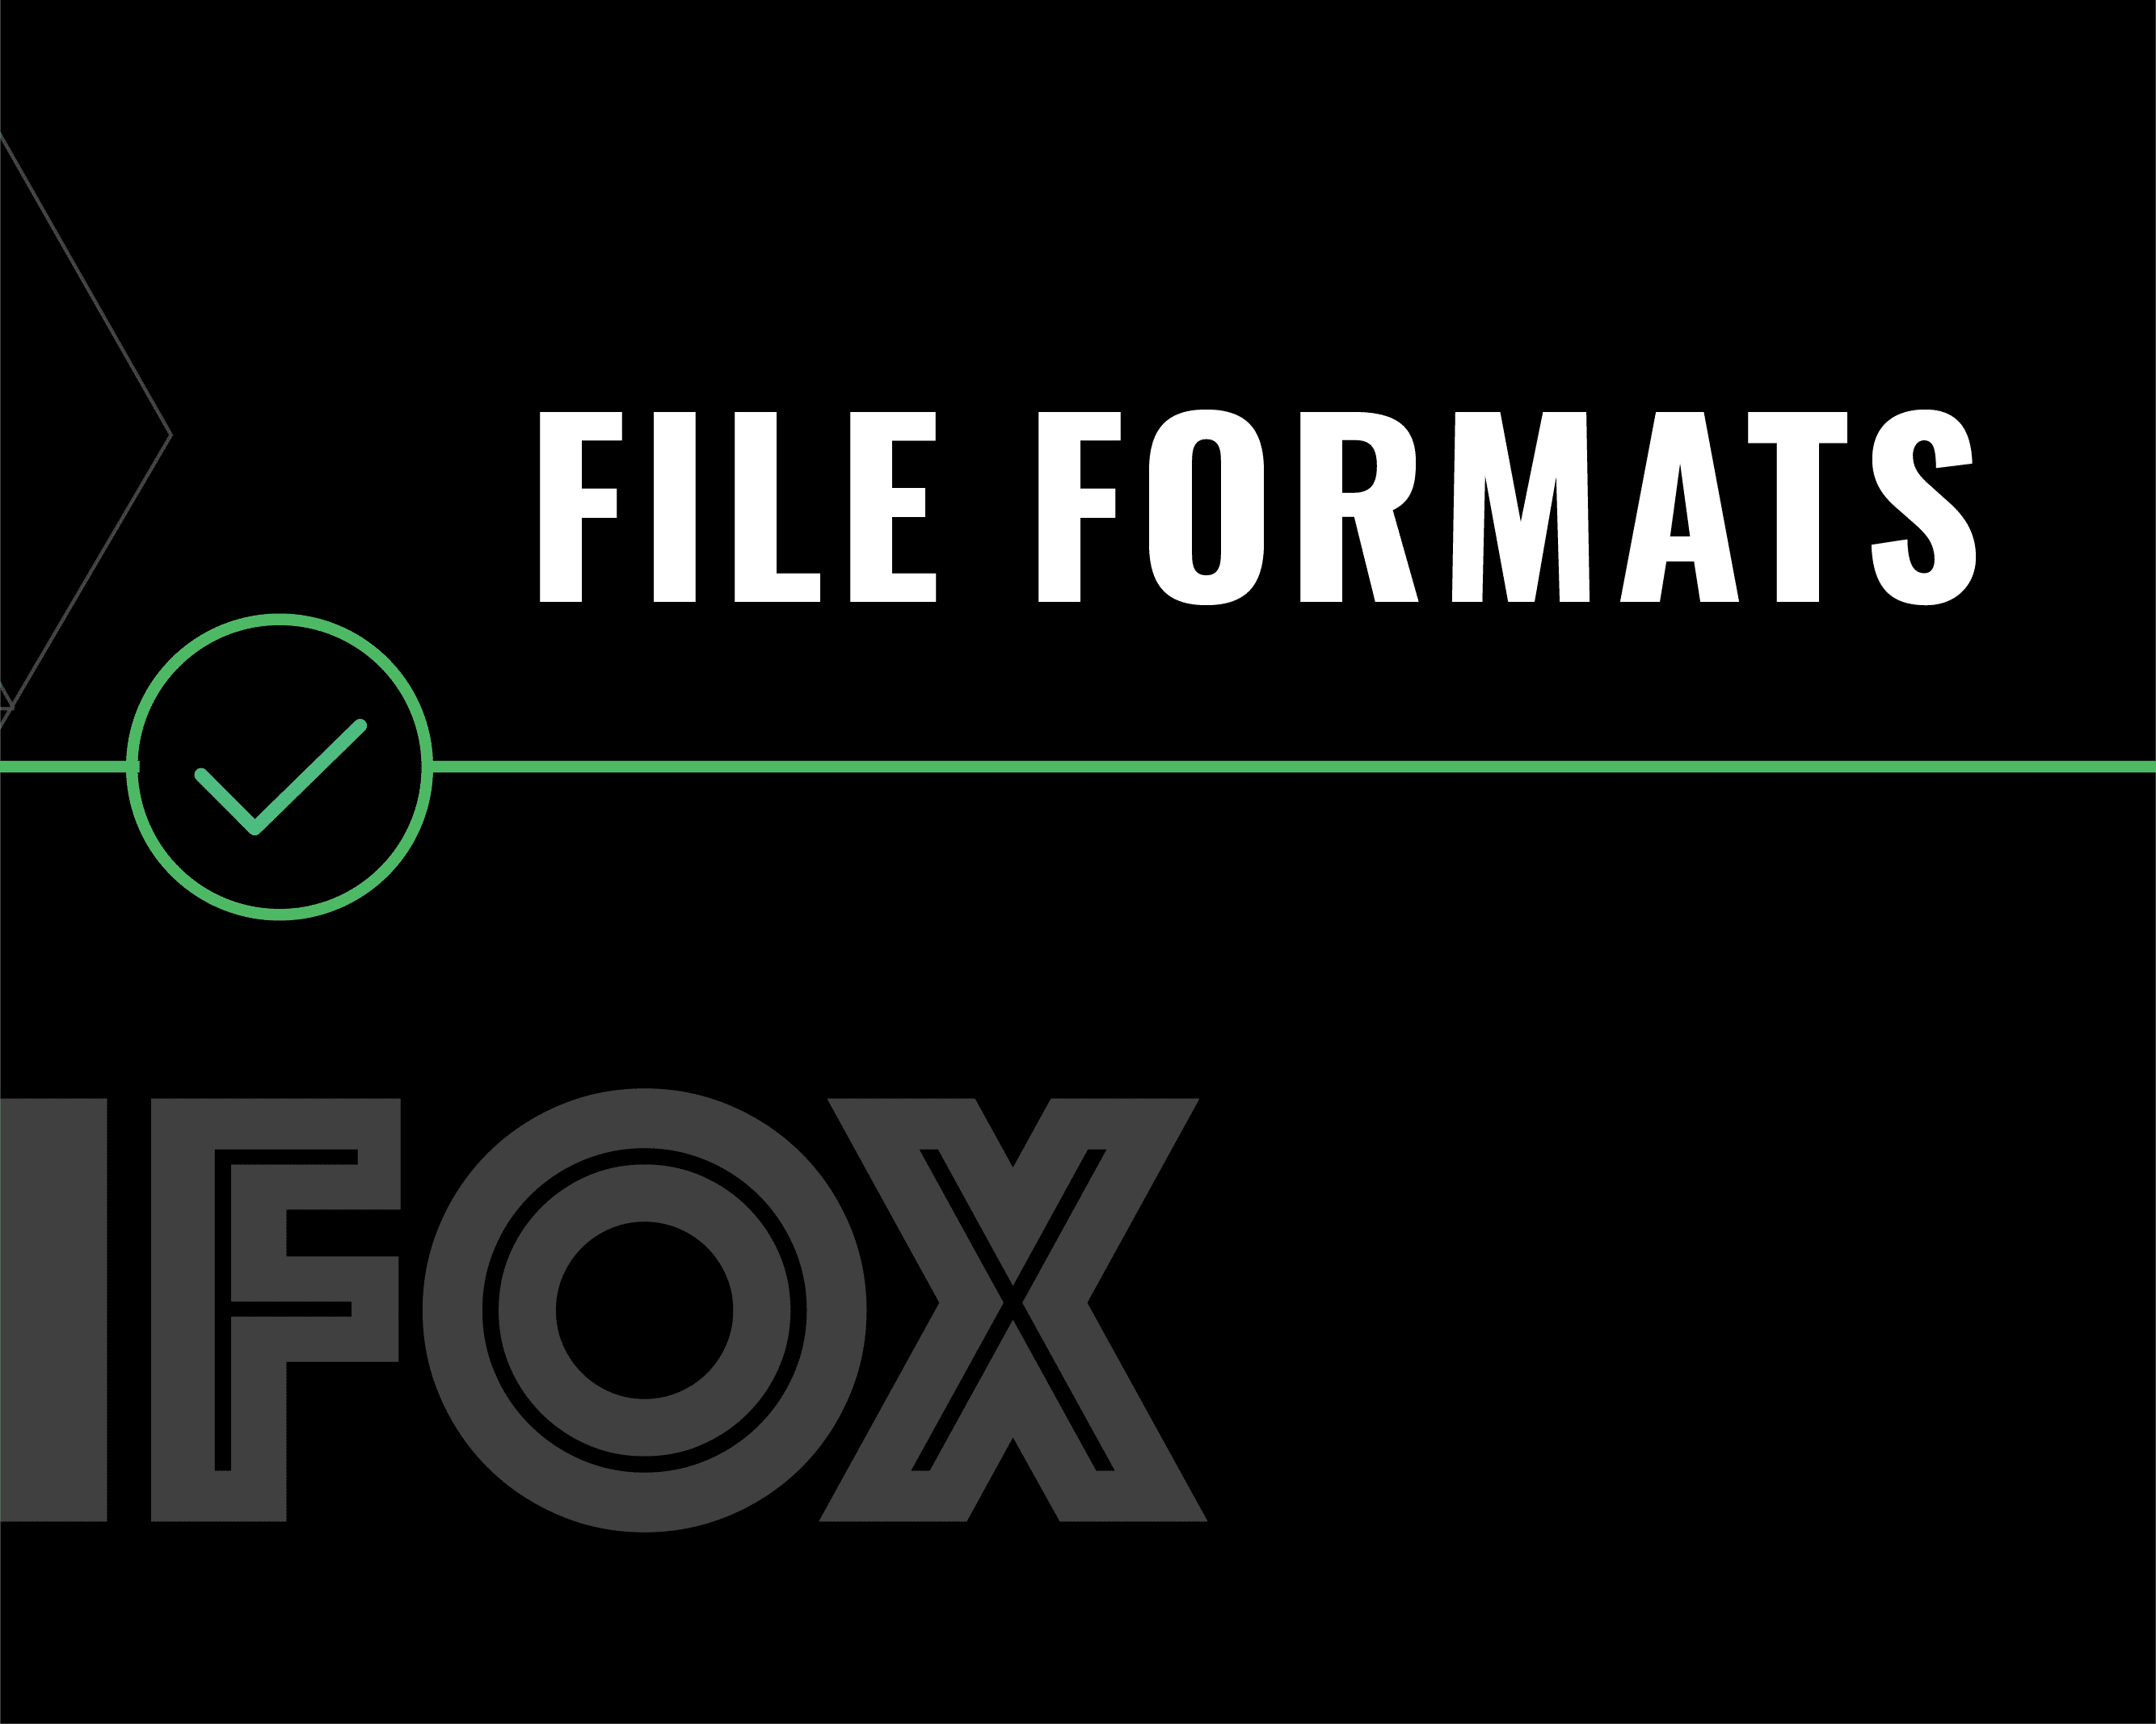 Vector image of File Formats text